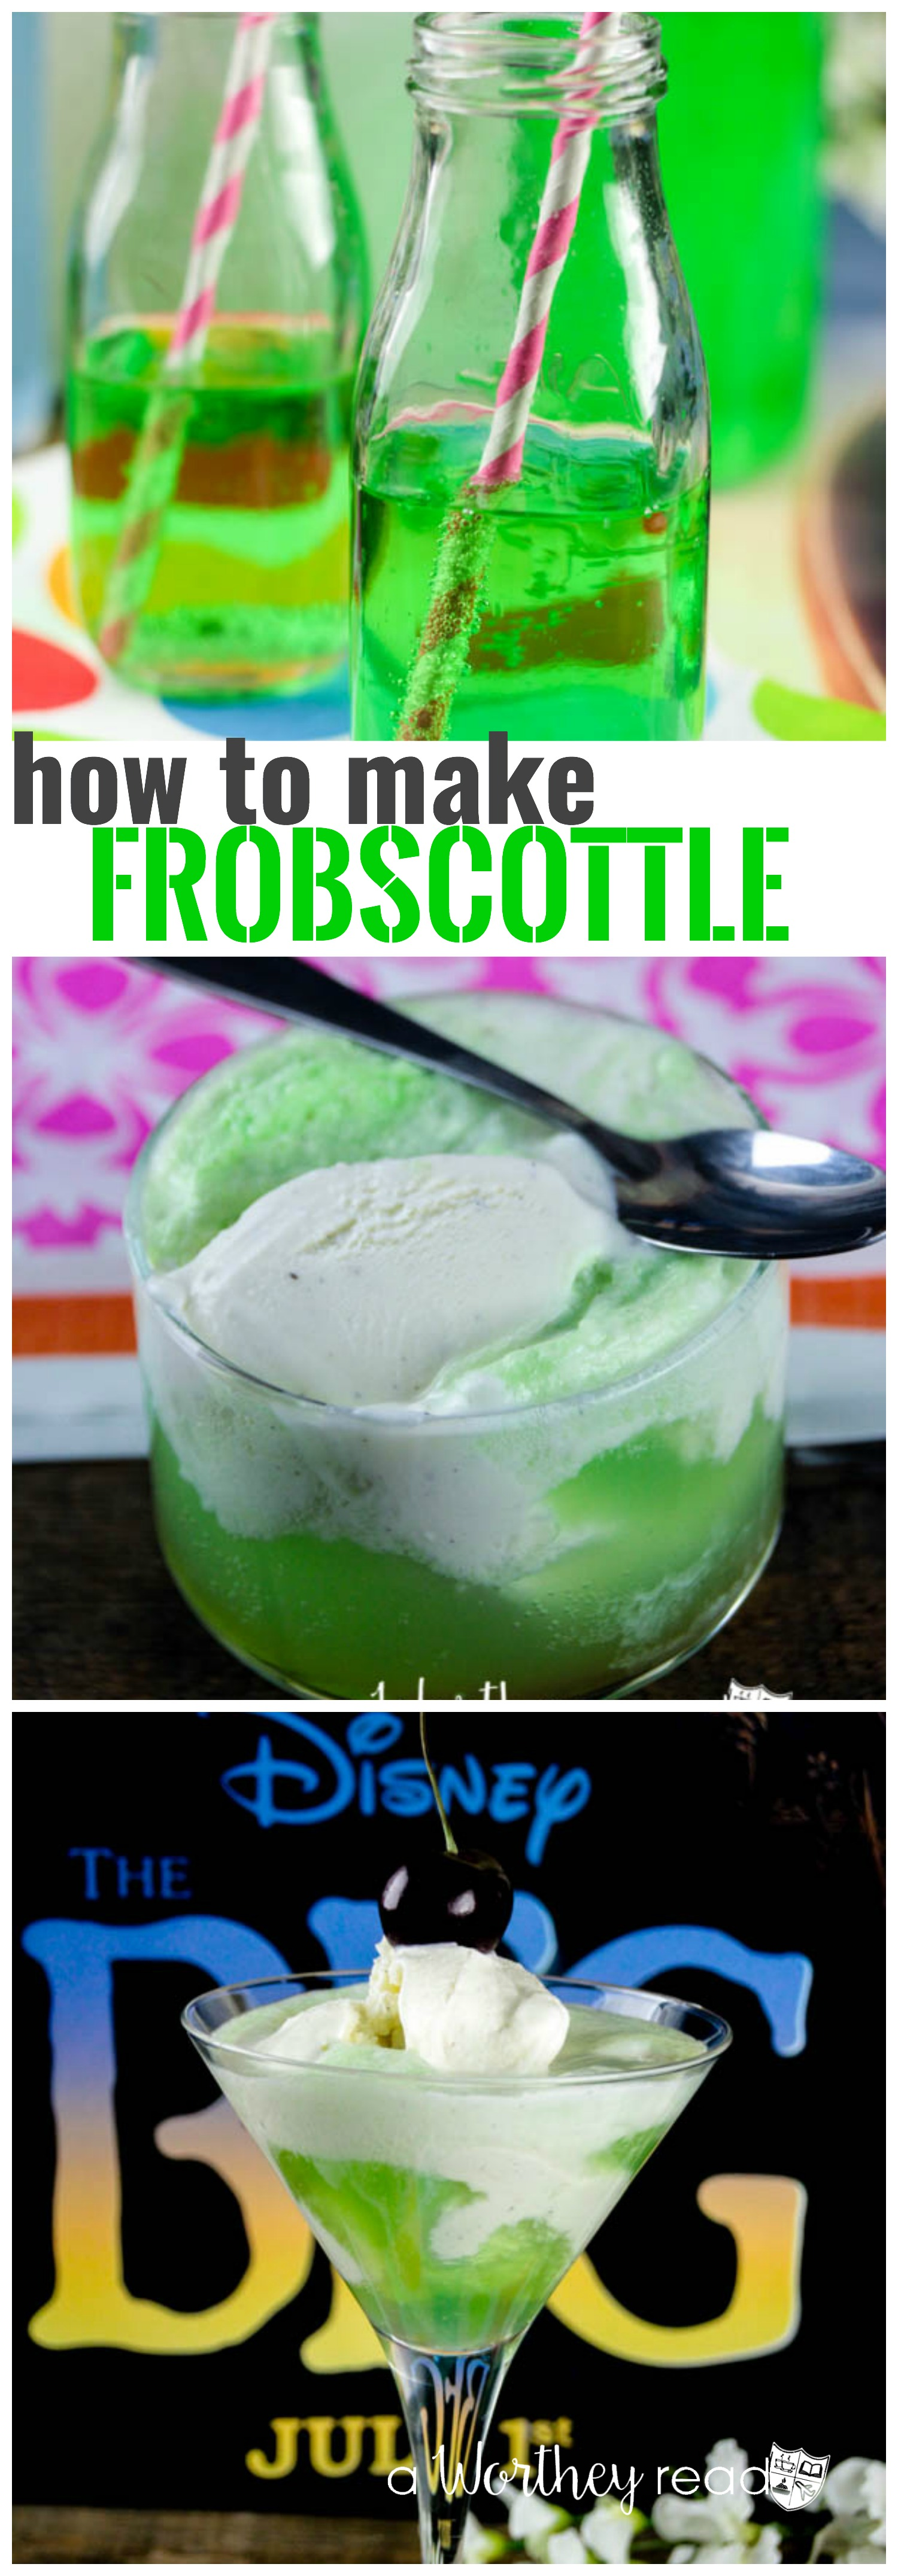 How to make Frobscottle from the BFG movie - Three different Frobscottle recipe ideas (including an adult version)